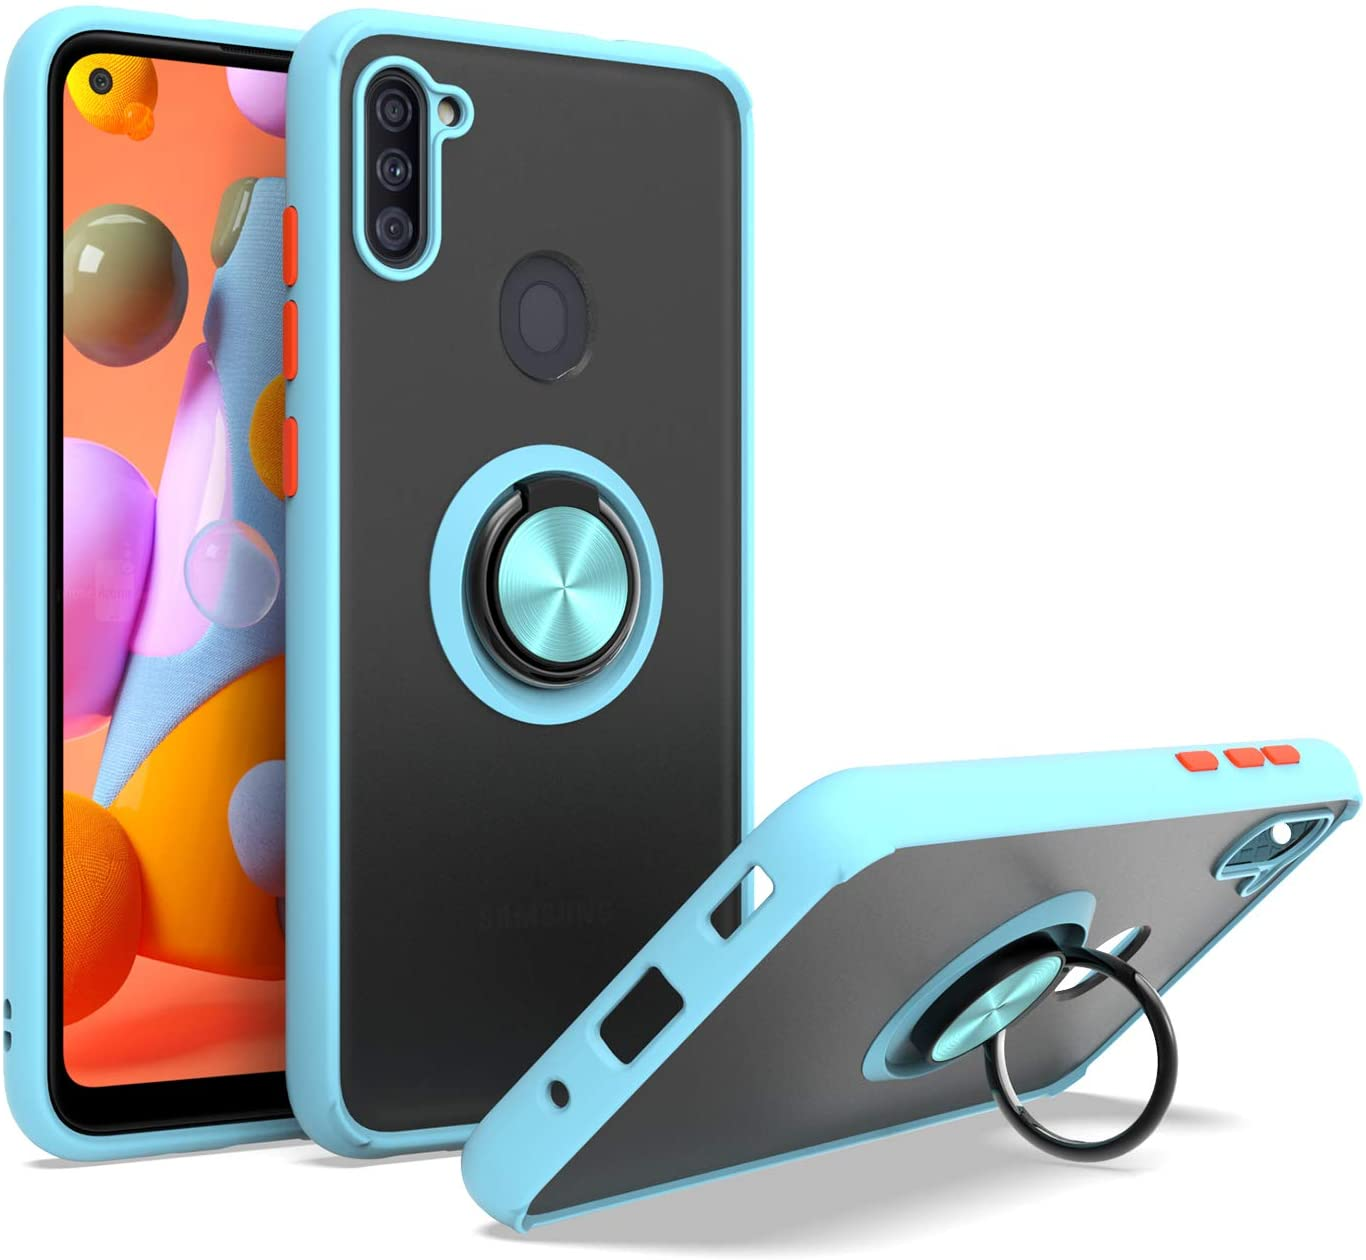 EnCASEs Cell Phone Case for Samsung Galaxy A11, Slim TPU with Metal Ring Kickstand, Shockproof Bumper Protection Case, Teal